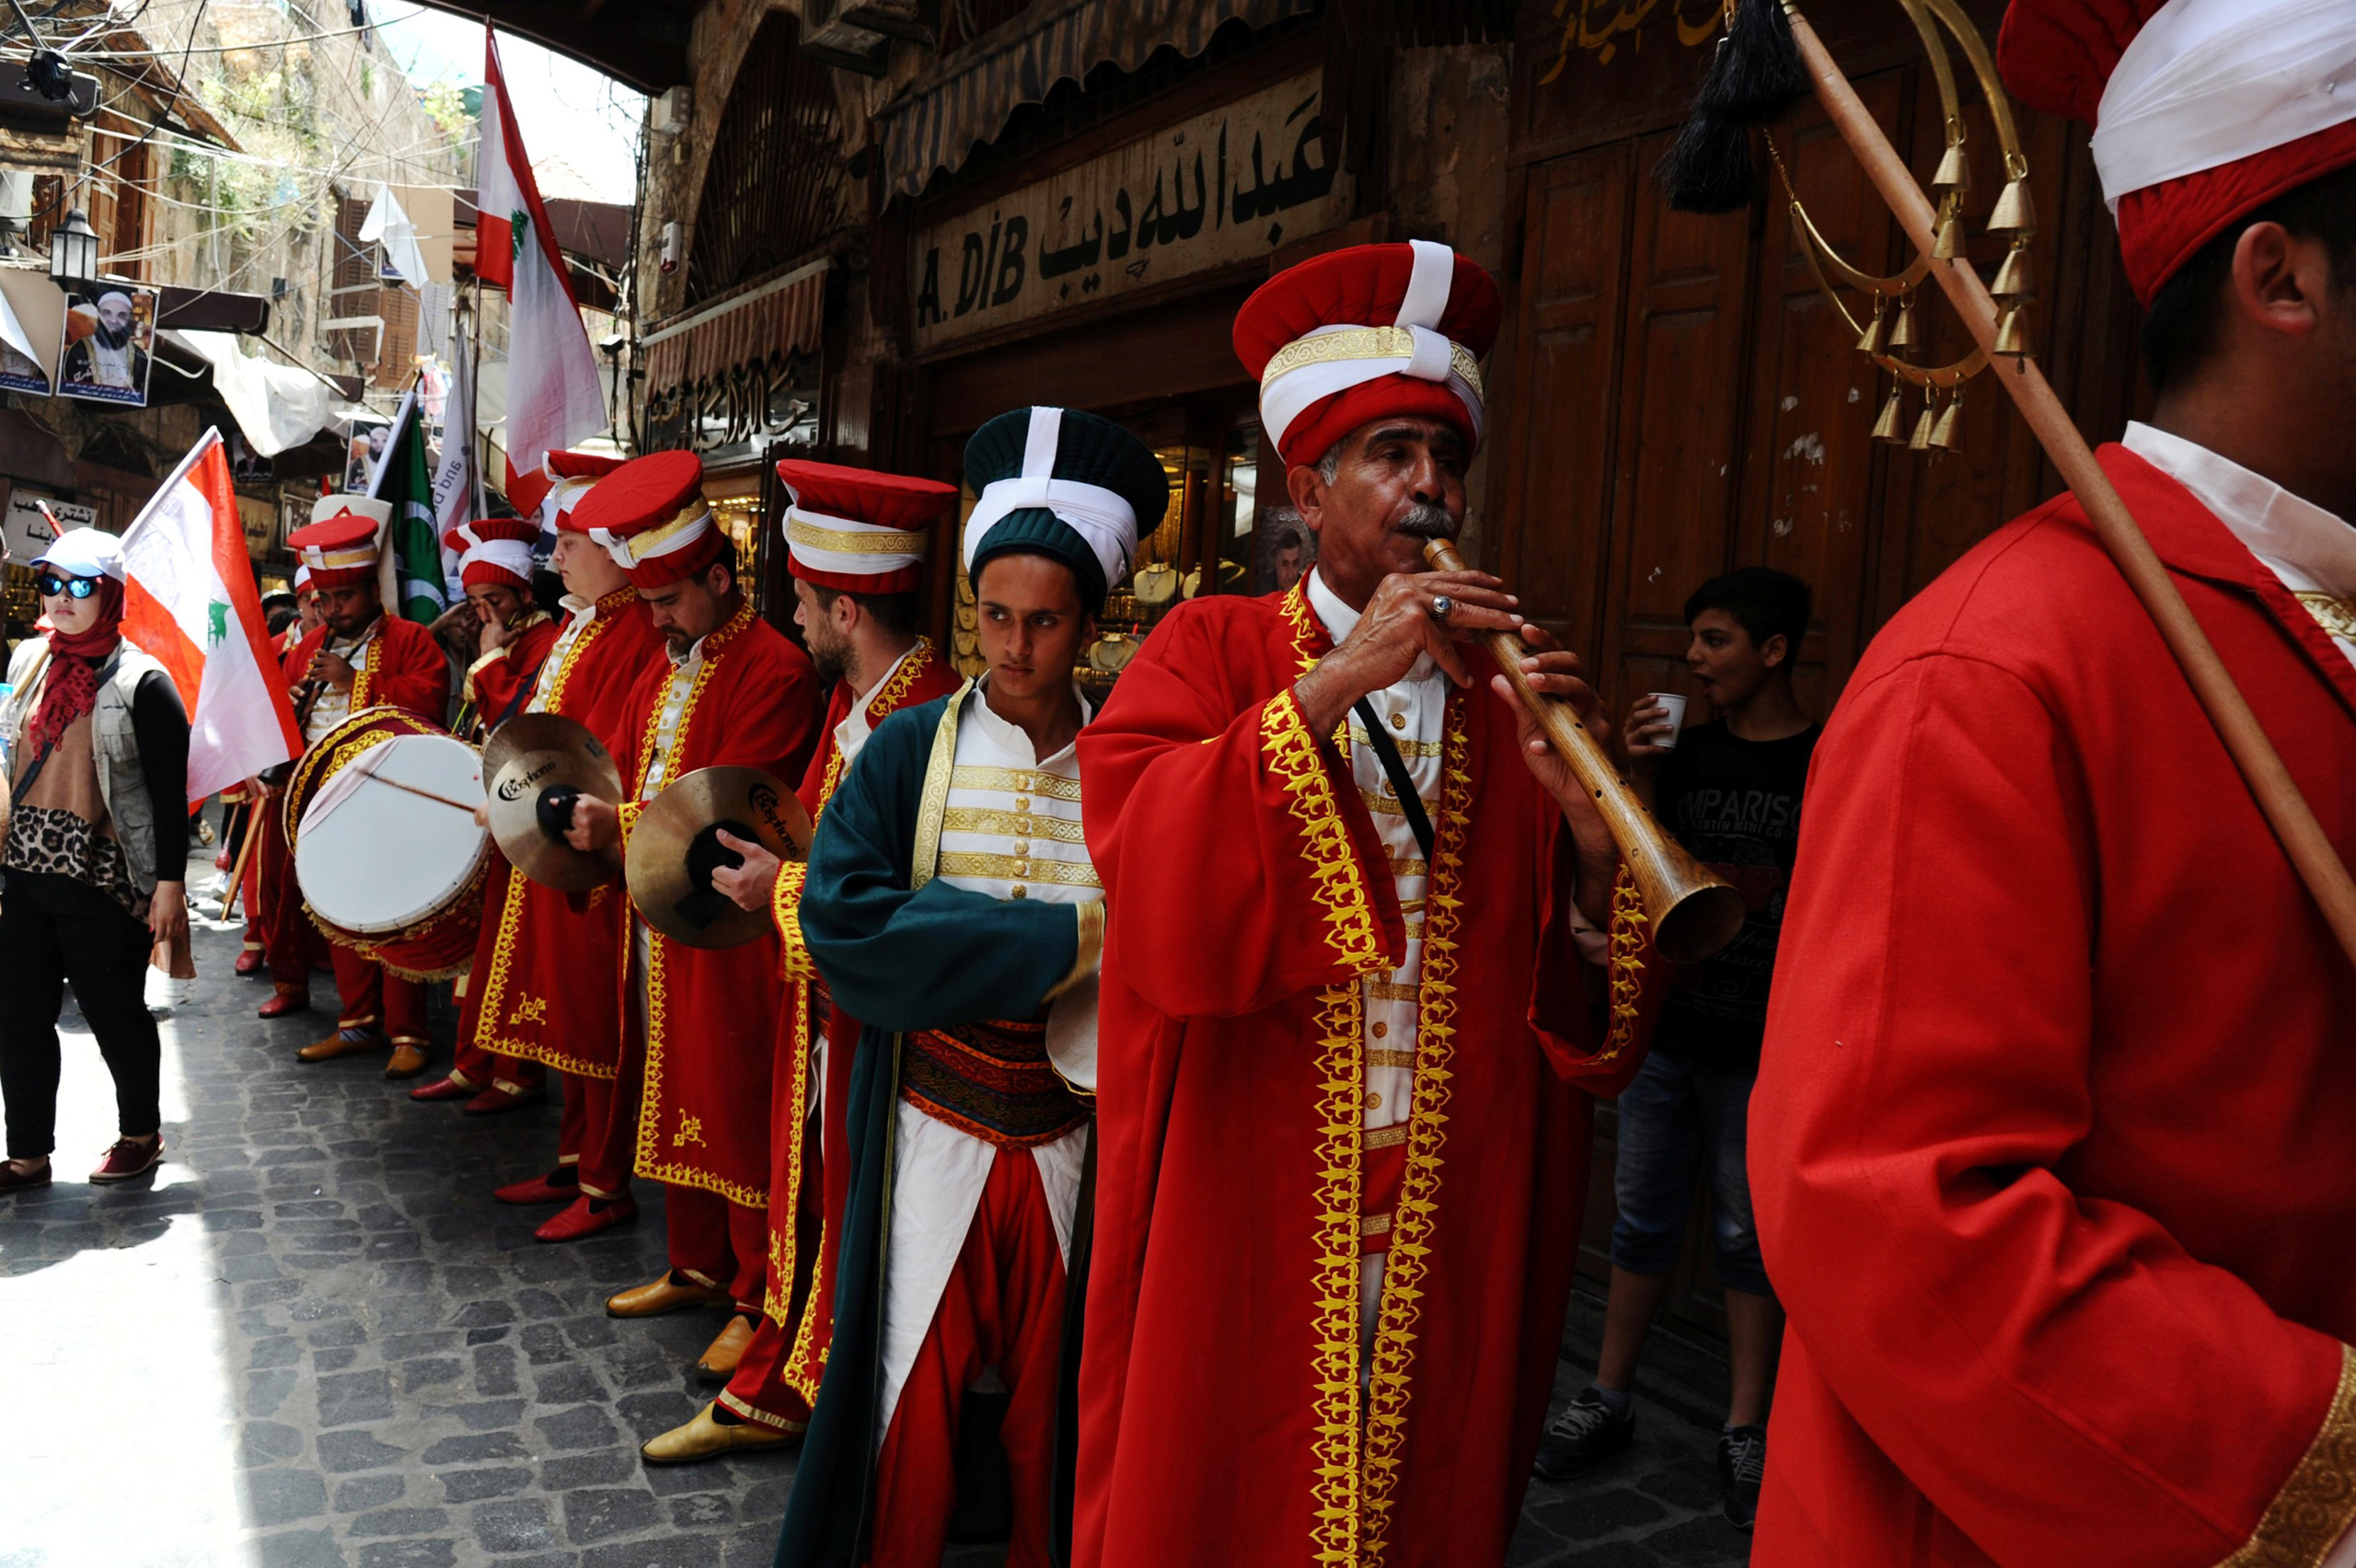 A Turkish band plays music welcoming the holy fasting month of Ramadan in Tripoli, Lebanon, June 3, 2016.